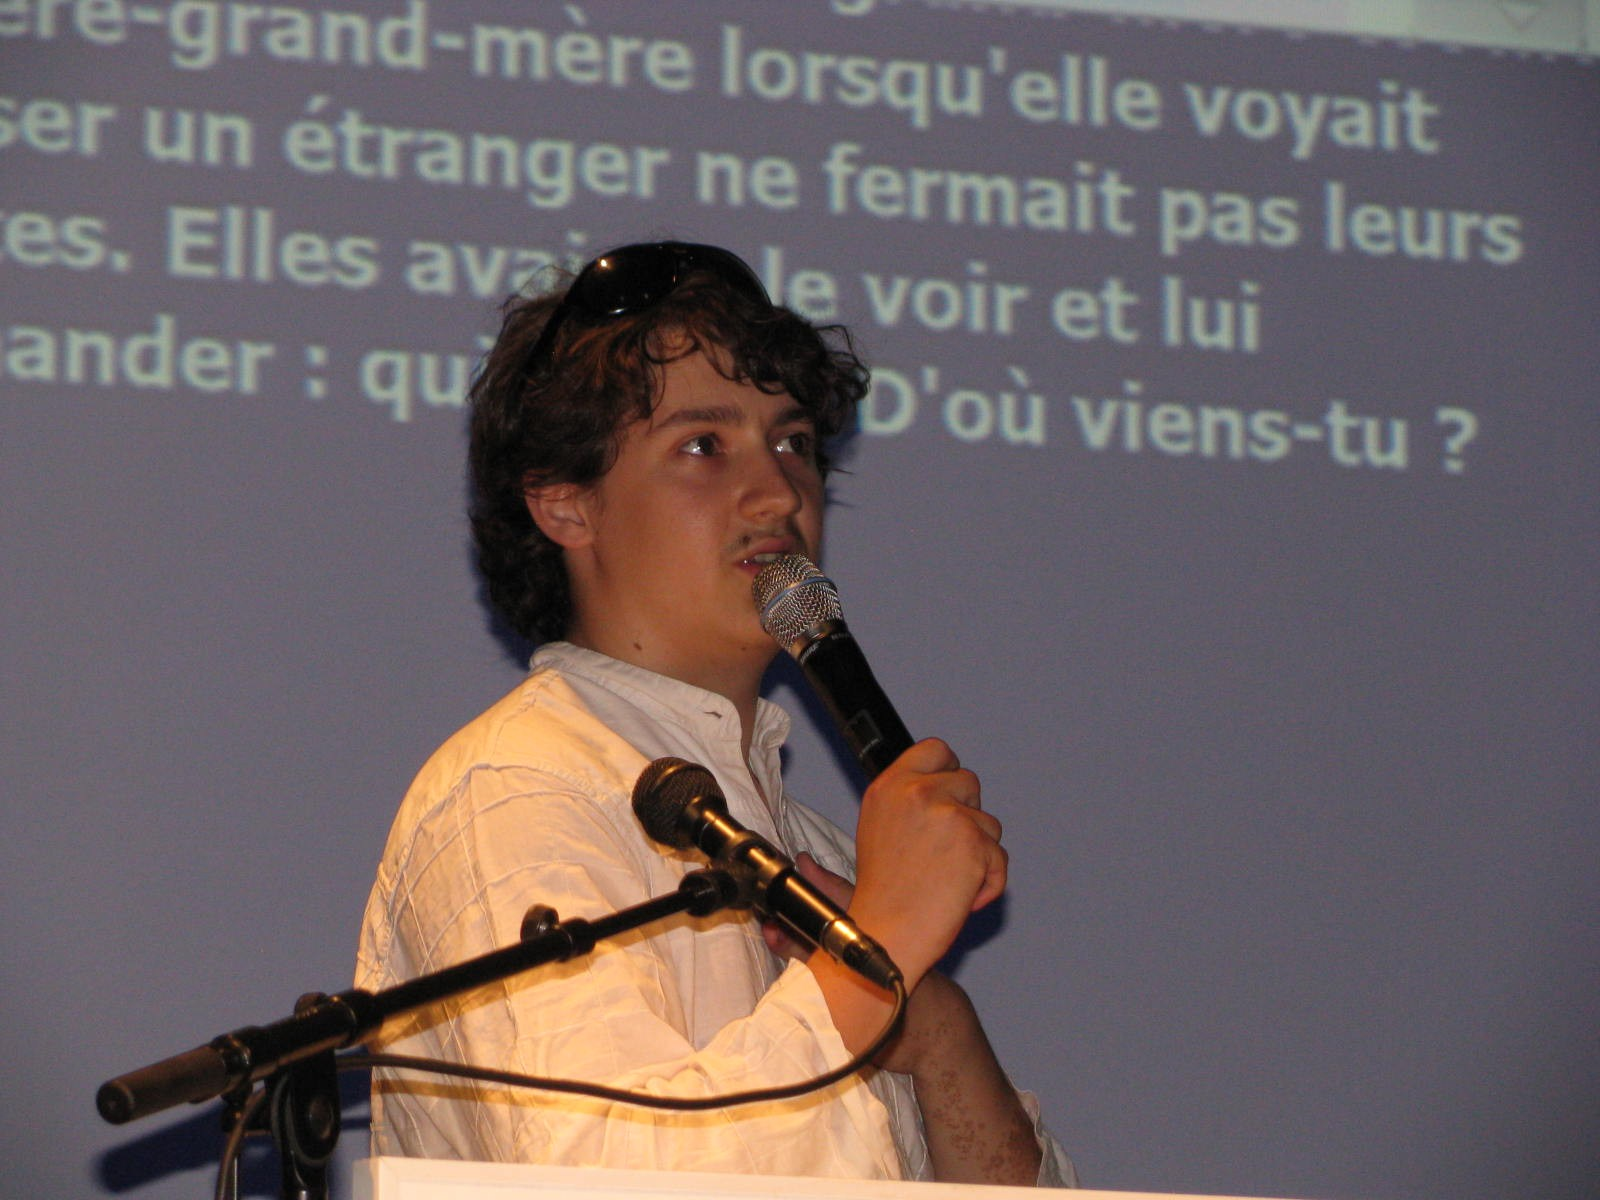 photo de Clement pendant son discours